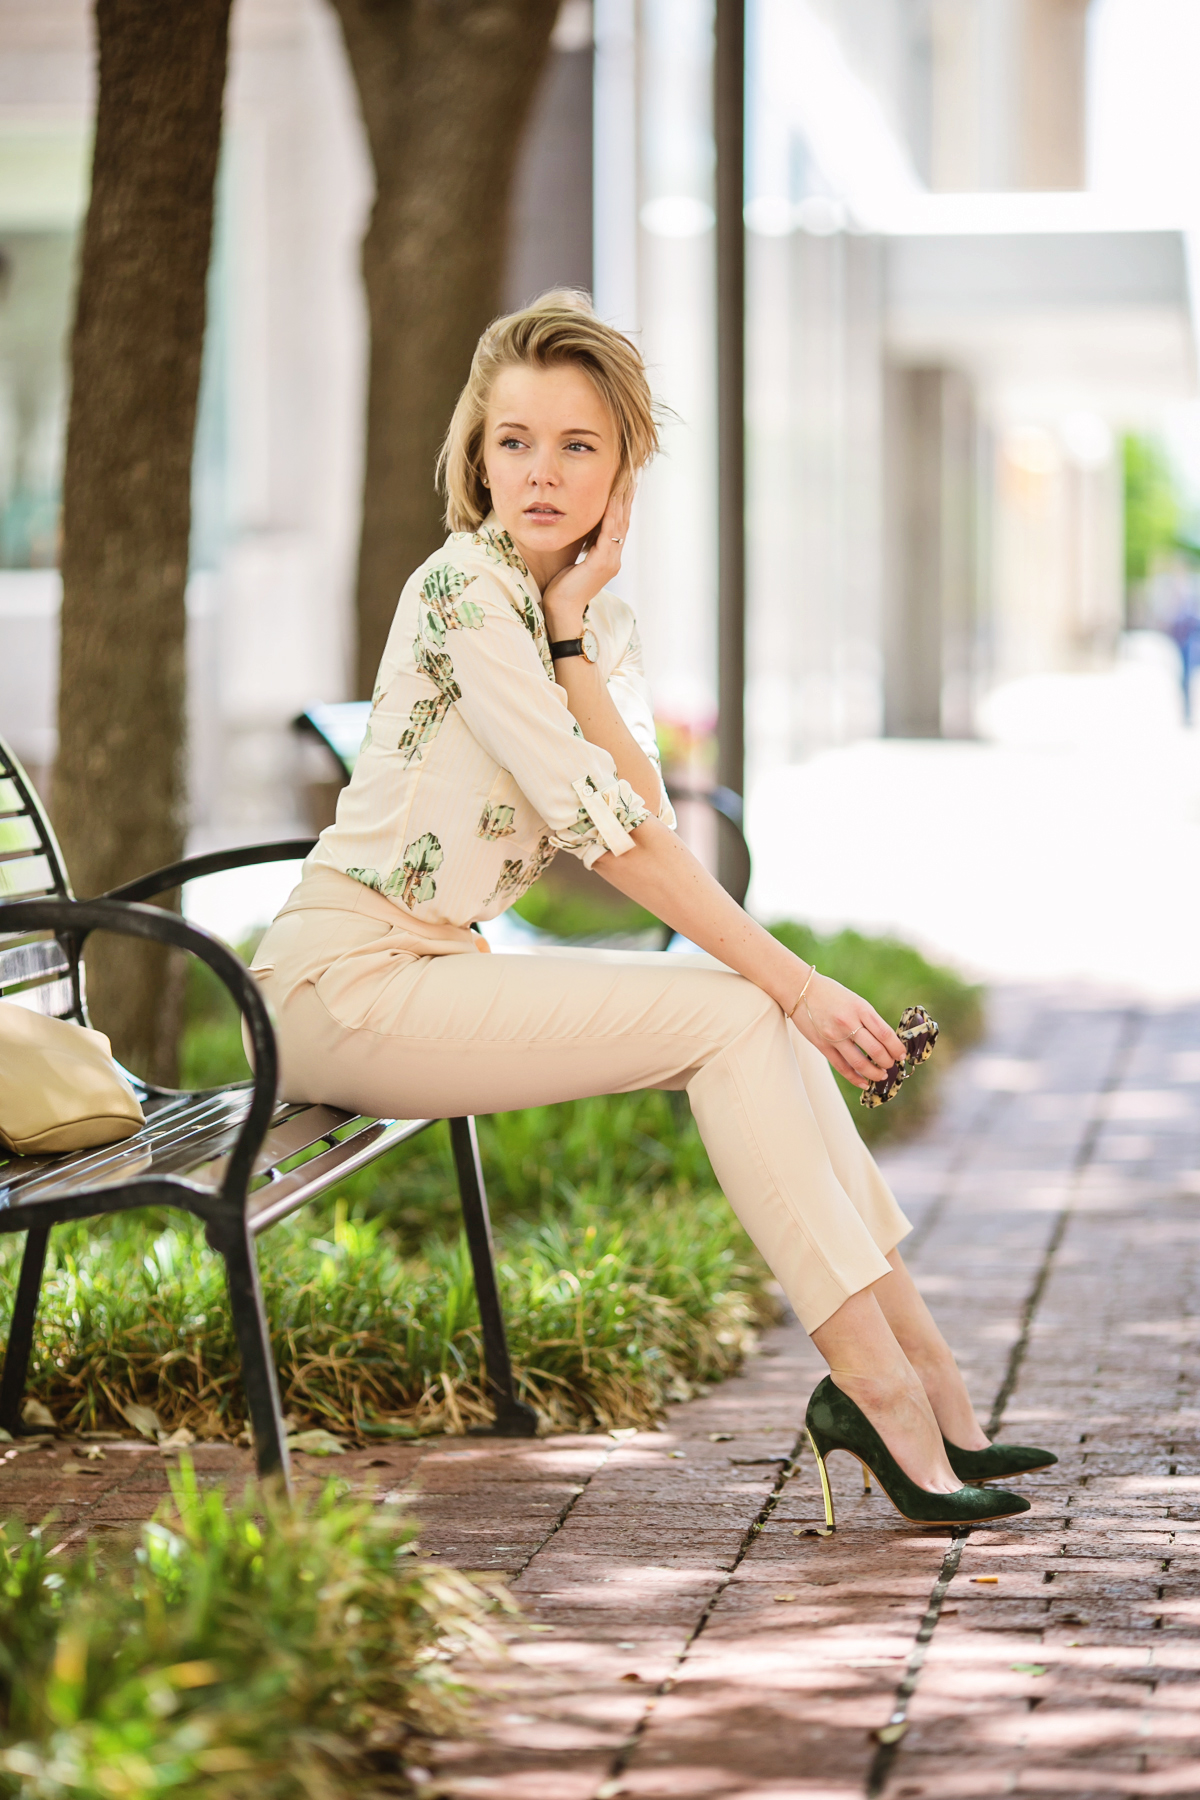 darya kamalova from thecablook in dallas texas is wearing beige pants and beige shirt with green leaves with marni retro ctutch and asos handmade sunglasses-42